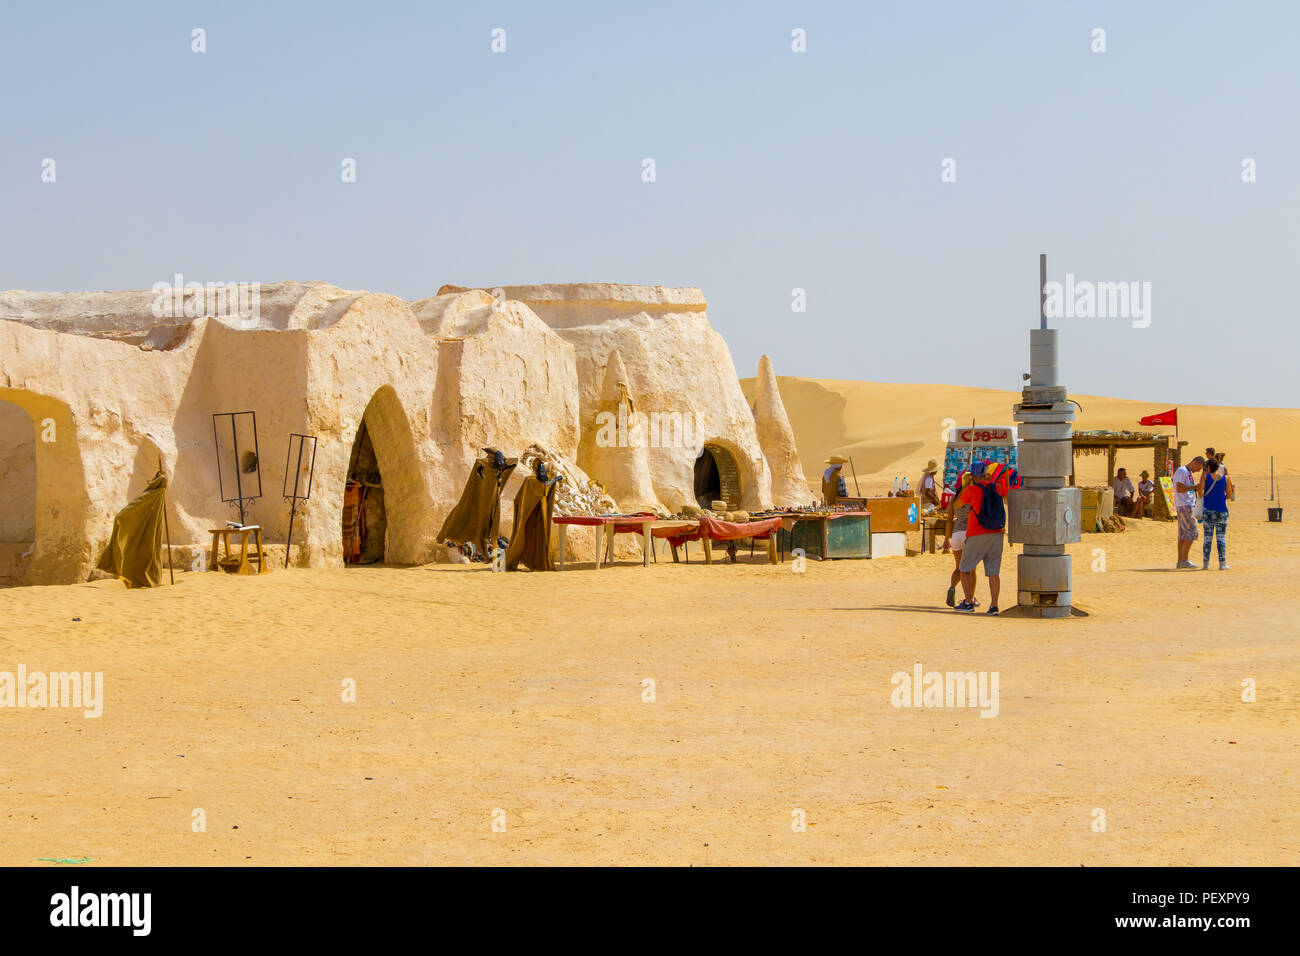 People and the fake costumes of Darth Vader from star wars, Tunisia, Africa - Stock Image